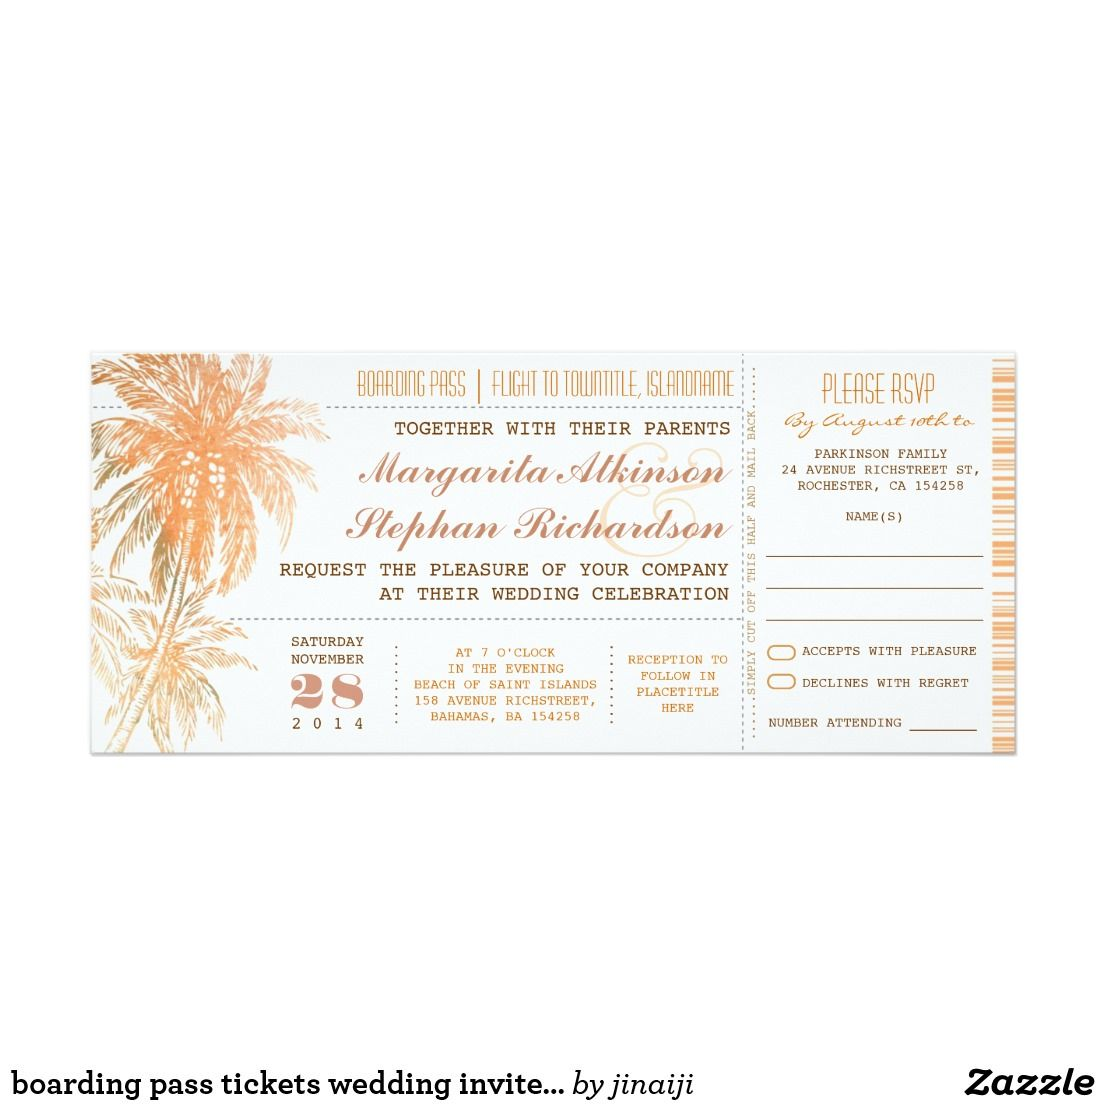 boarding pass tickets wedding invites with RSVP | Pinterest ...